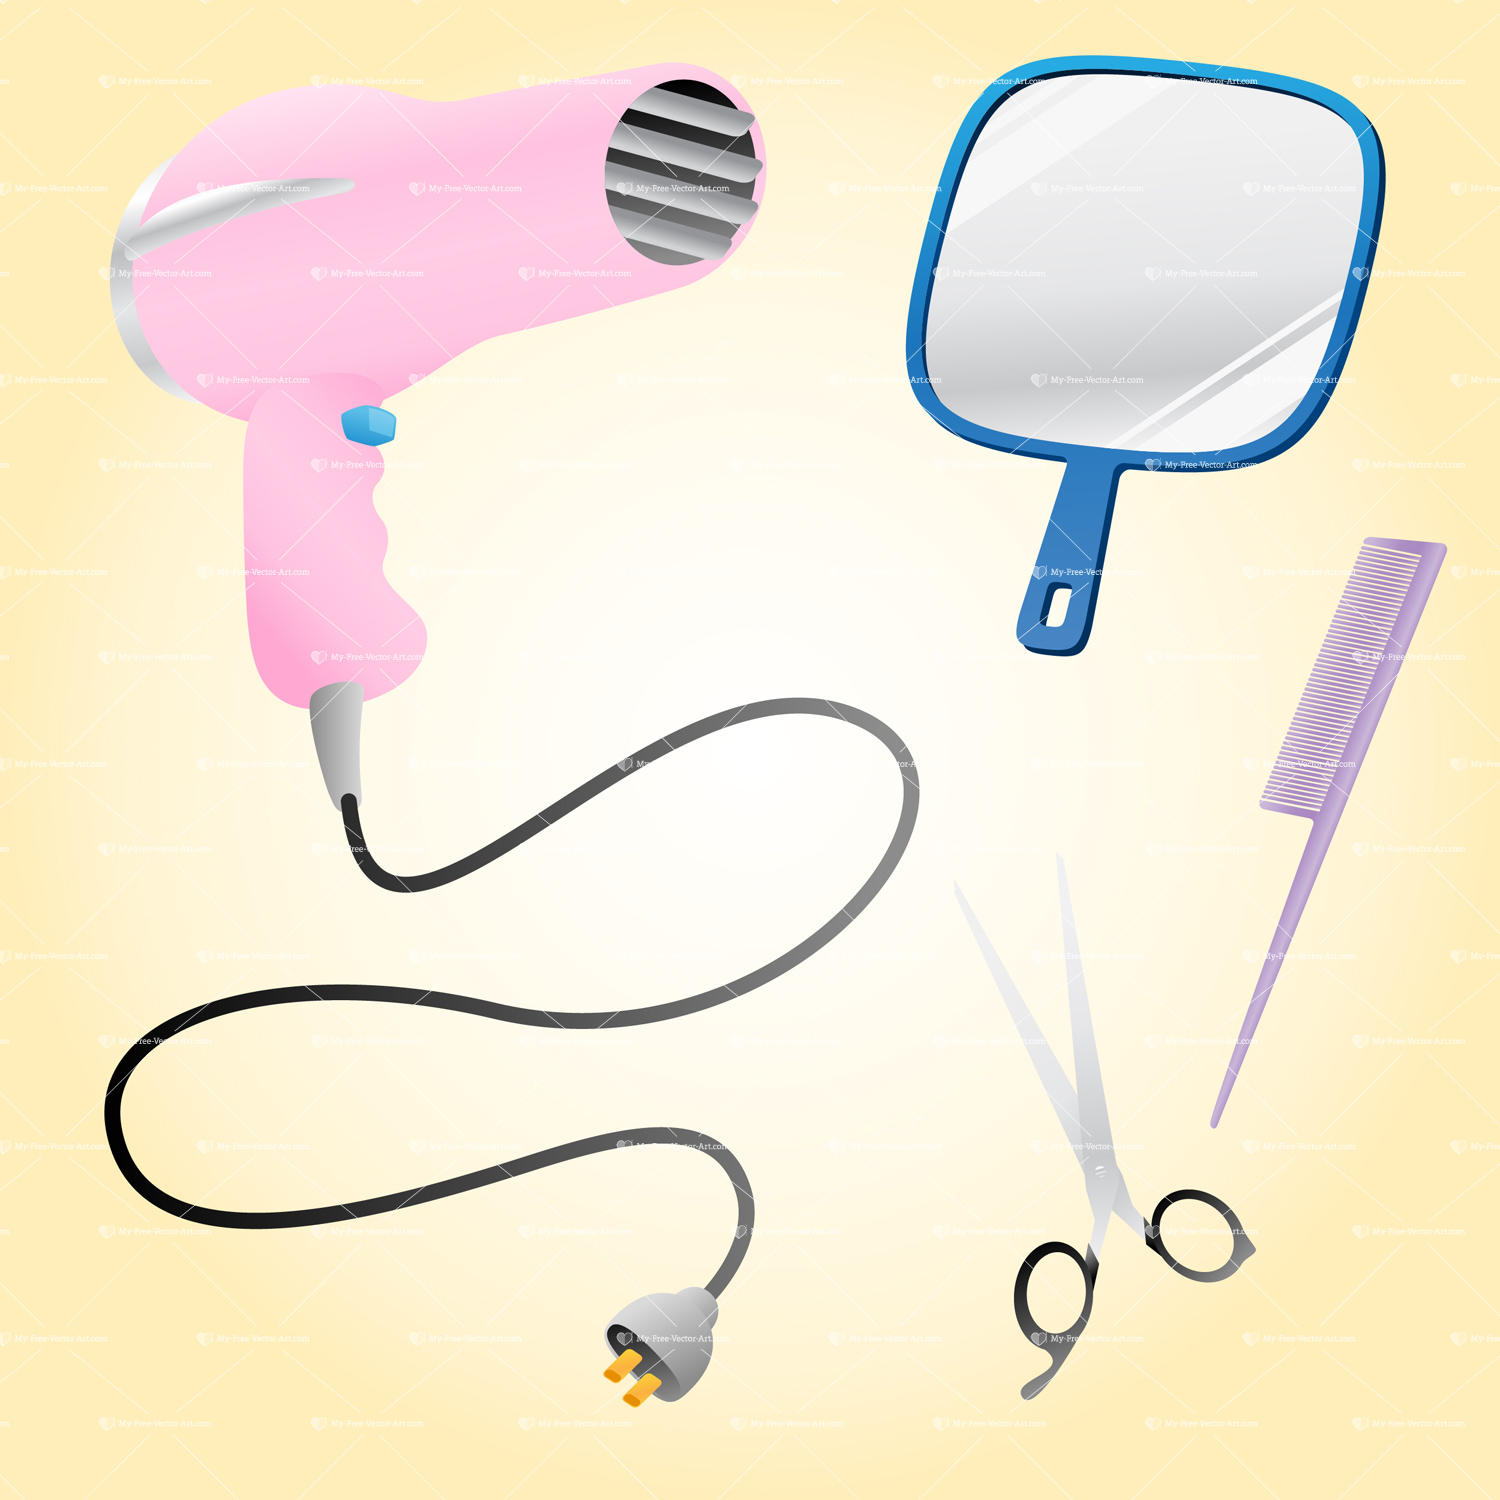 illustration featuring a group of salon hair styling tools; Pink hair